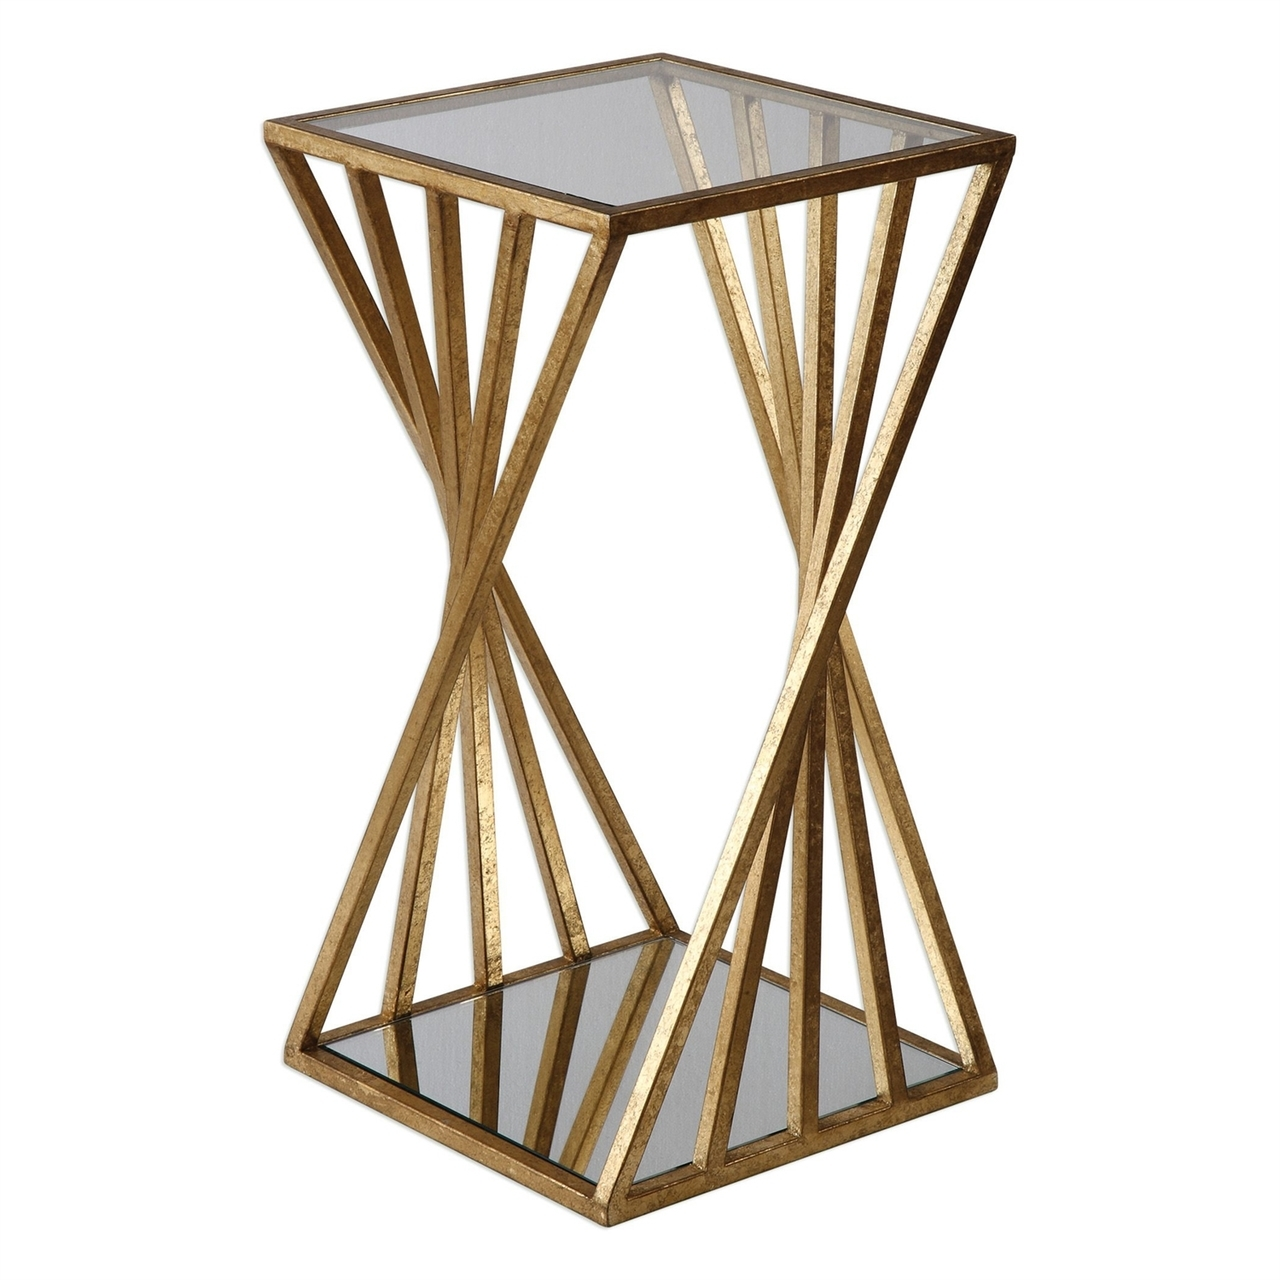 uttermost janina gold dimensional accent table vintage modern dstuc outdoor tables decor contemporary dining furniture decorative cabinets for living room adjustable height side